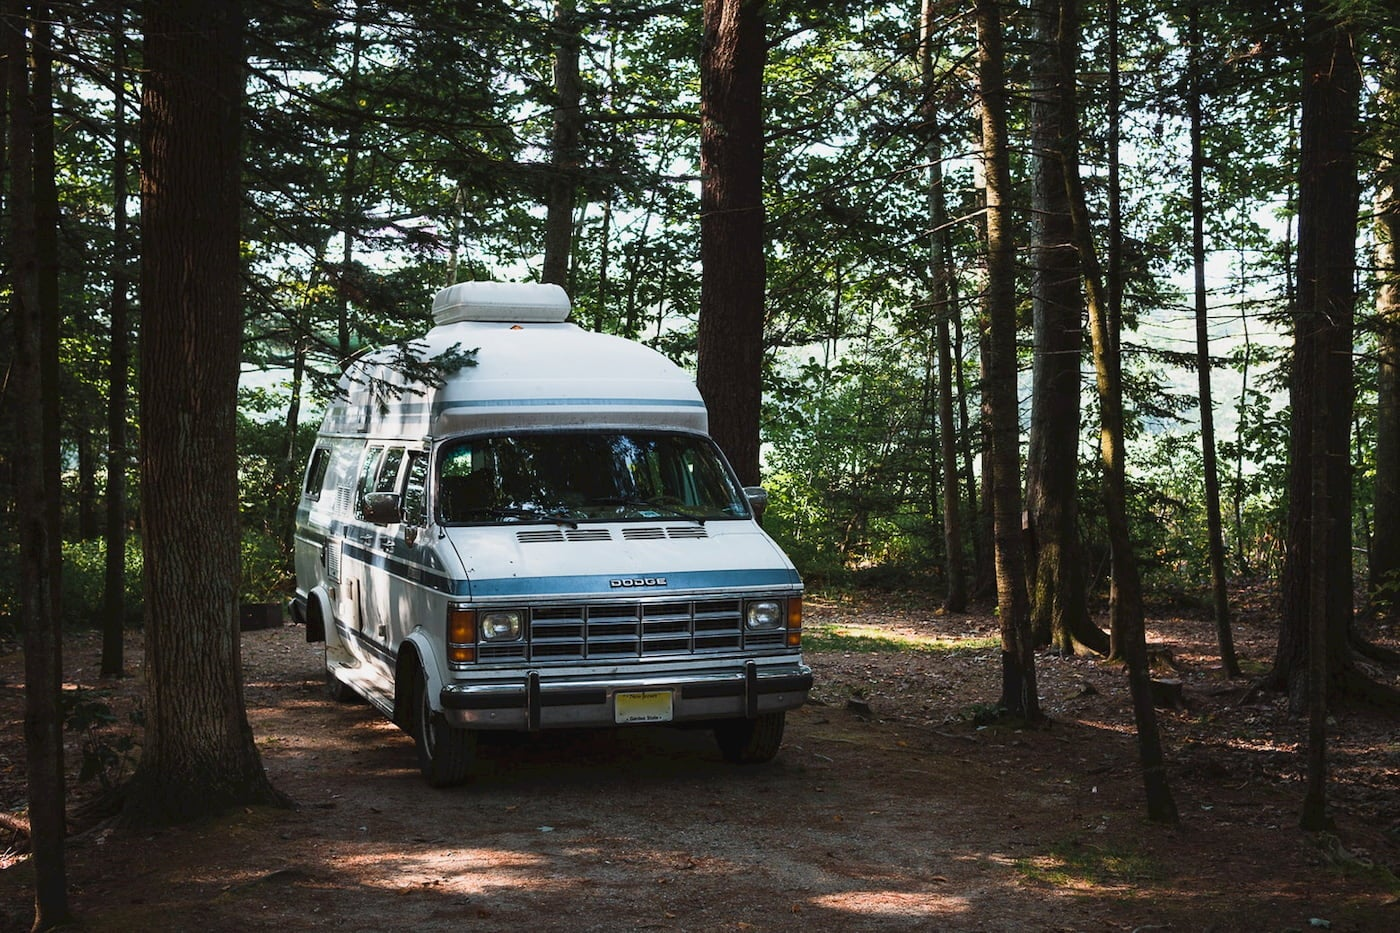 Dodge van parked in a wooded campsite with water in the background.